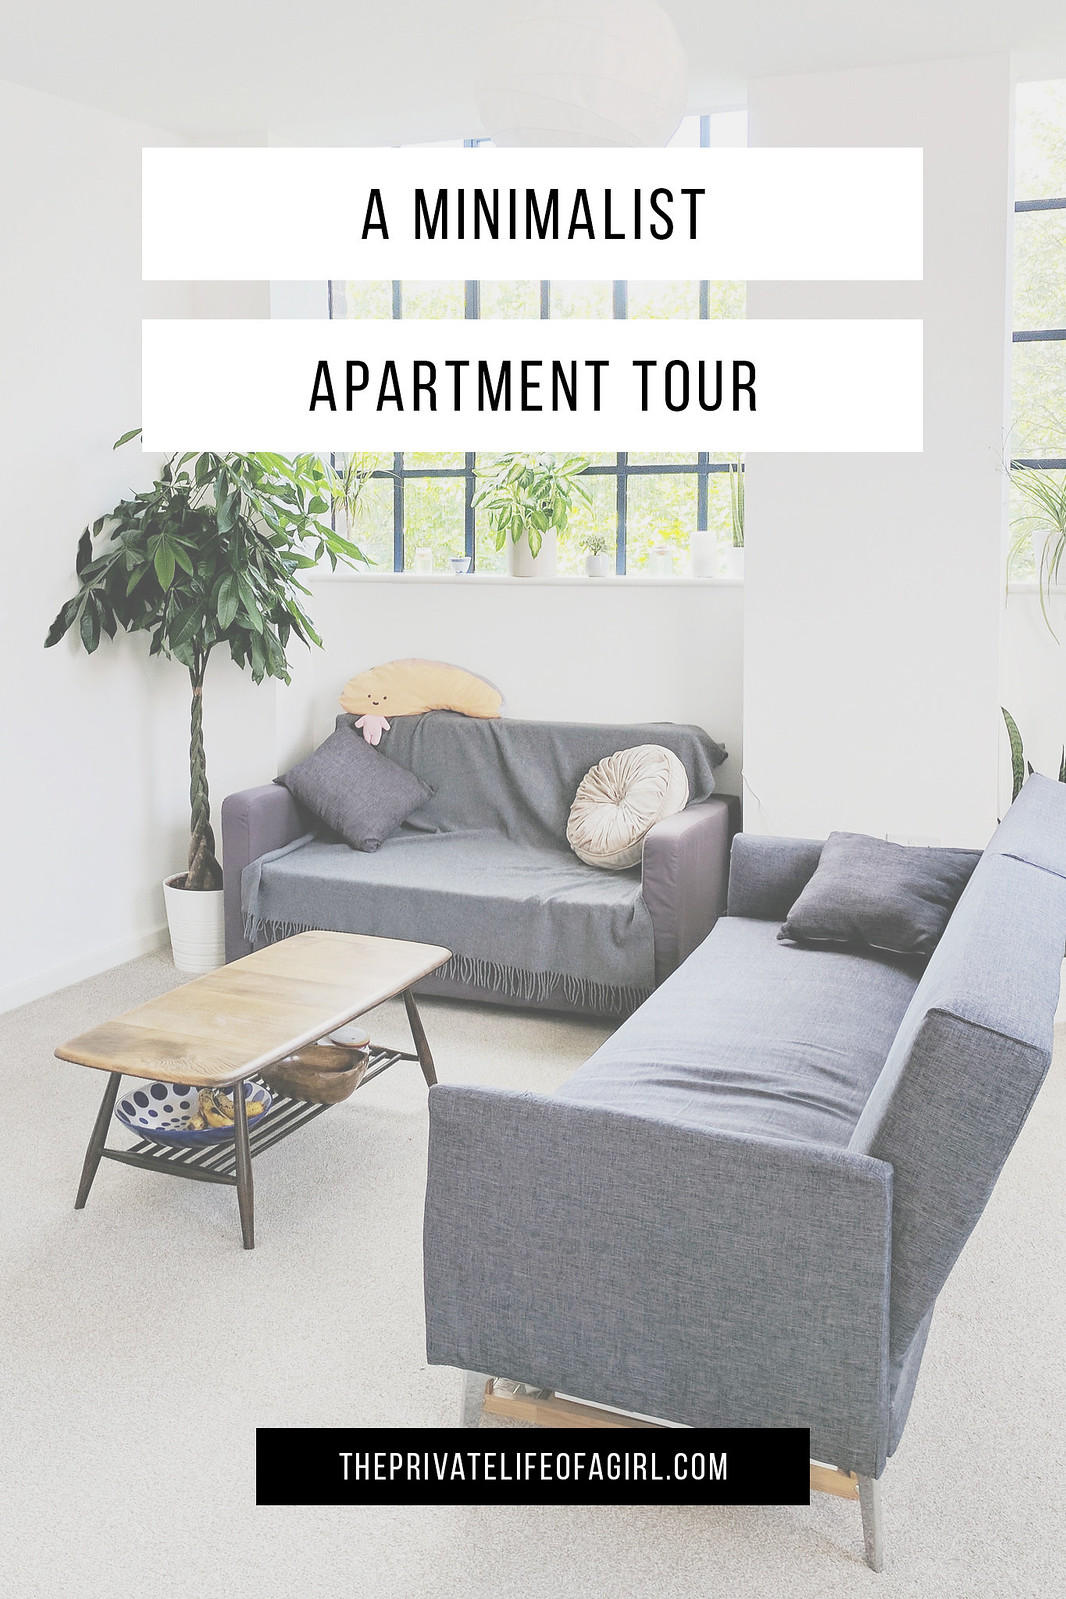 A Minimalist Apartment Tour